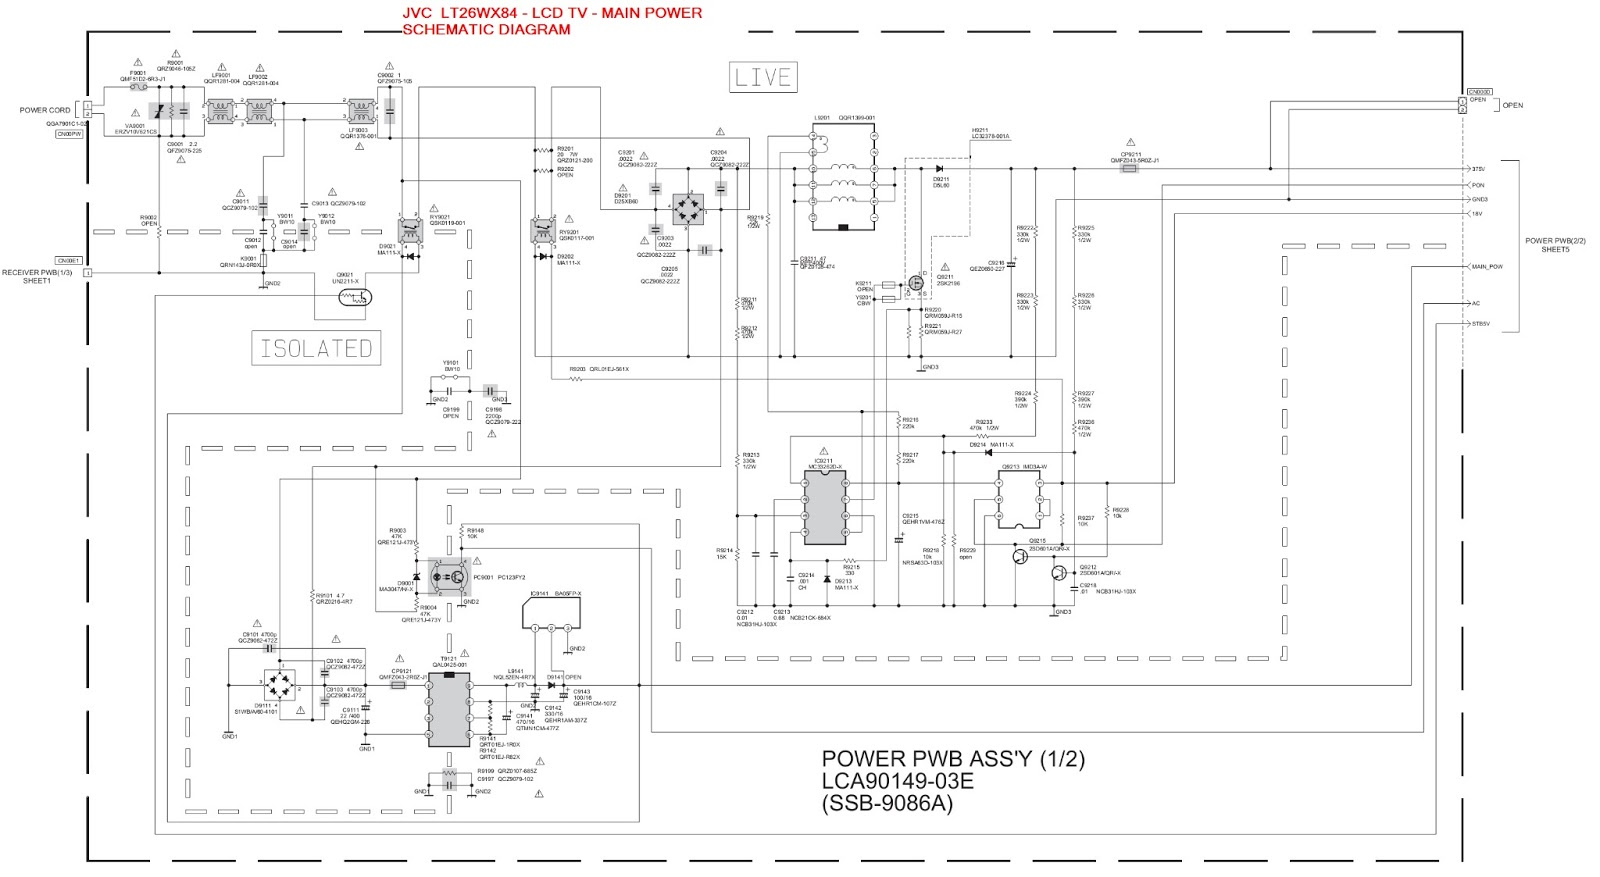 Circuit Diagram Jvc Tv B W Lt26wx84 Lcd Main Power Supply Schematic